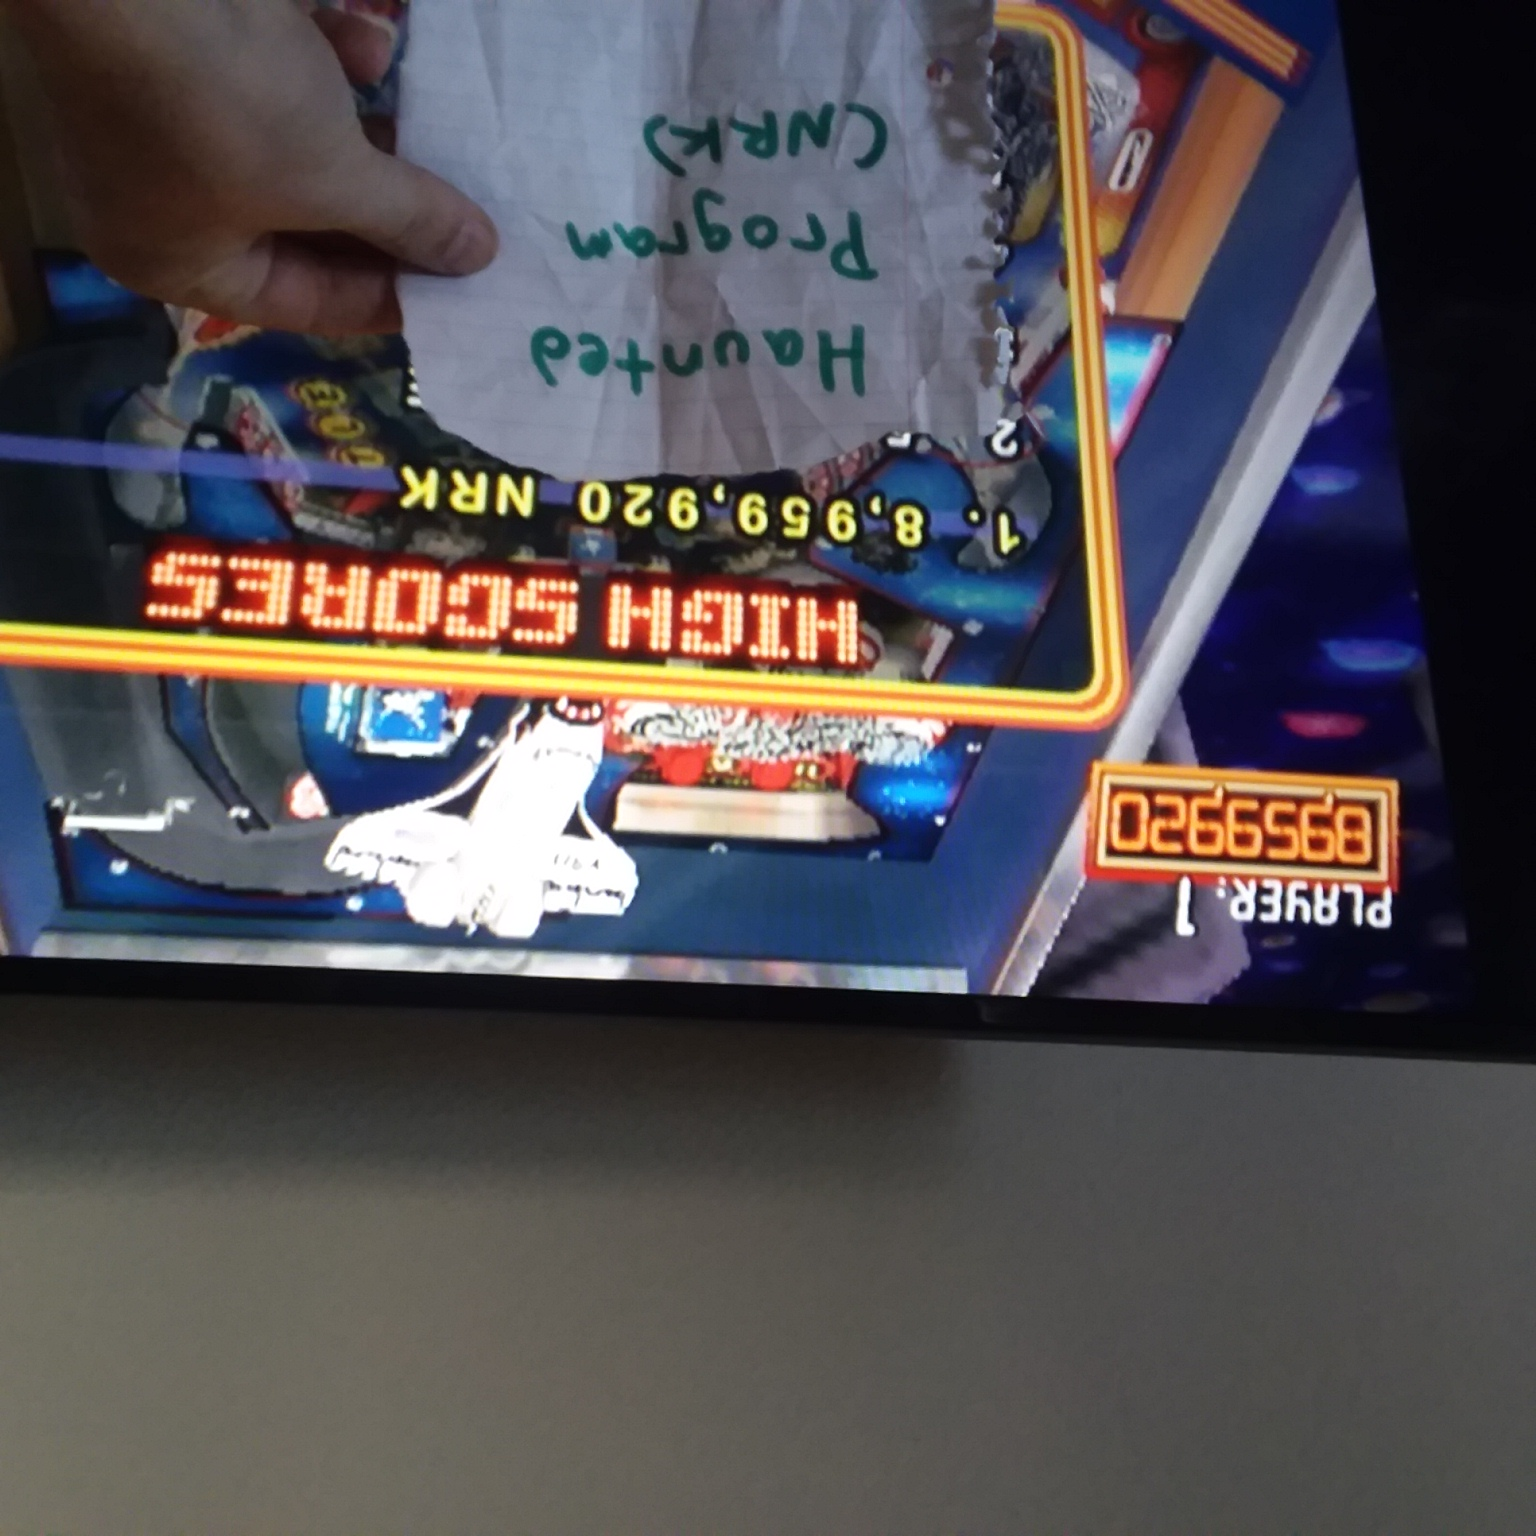 Hauntedprogram: Pinball Hall of Fame: The Williams Collection: Space Shuttle (Wii) 8,959,920 points on 2020-11-13 16:27:23